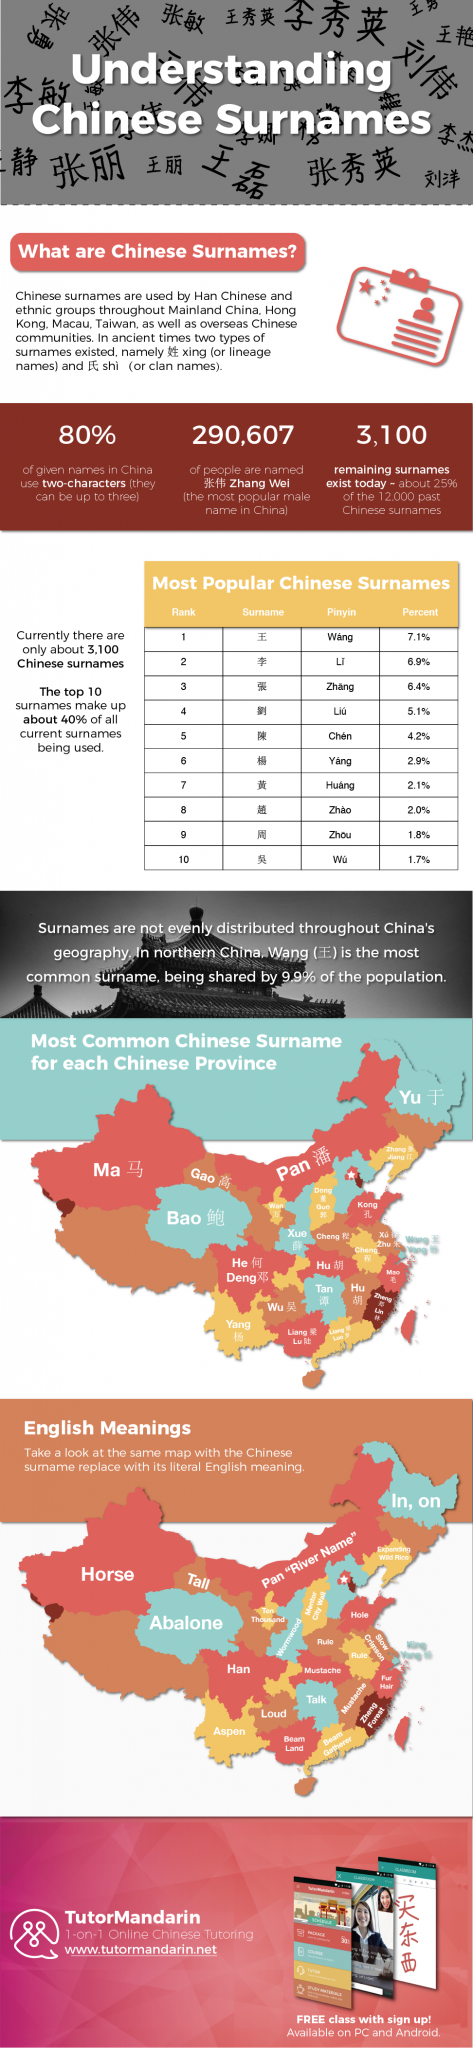 Chinese Surname Infographic